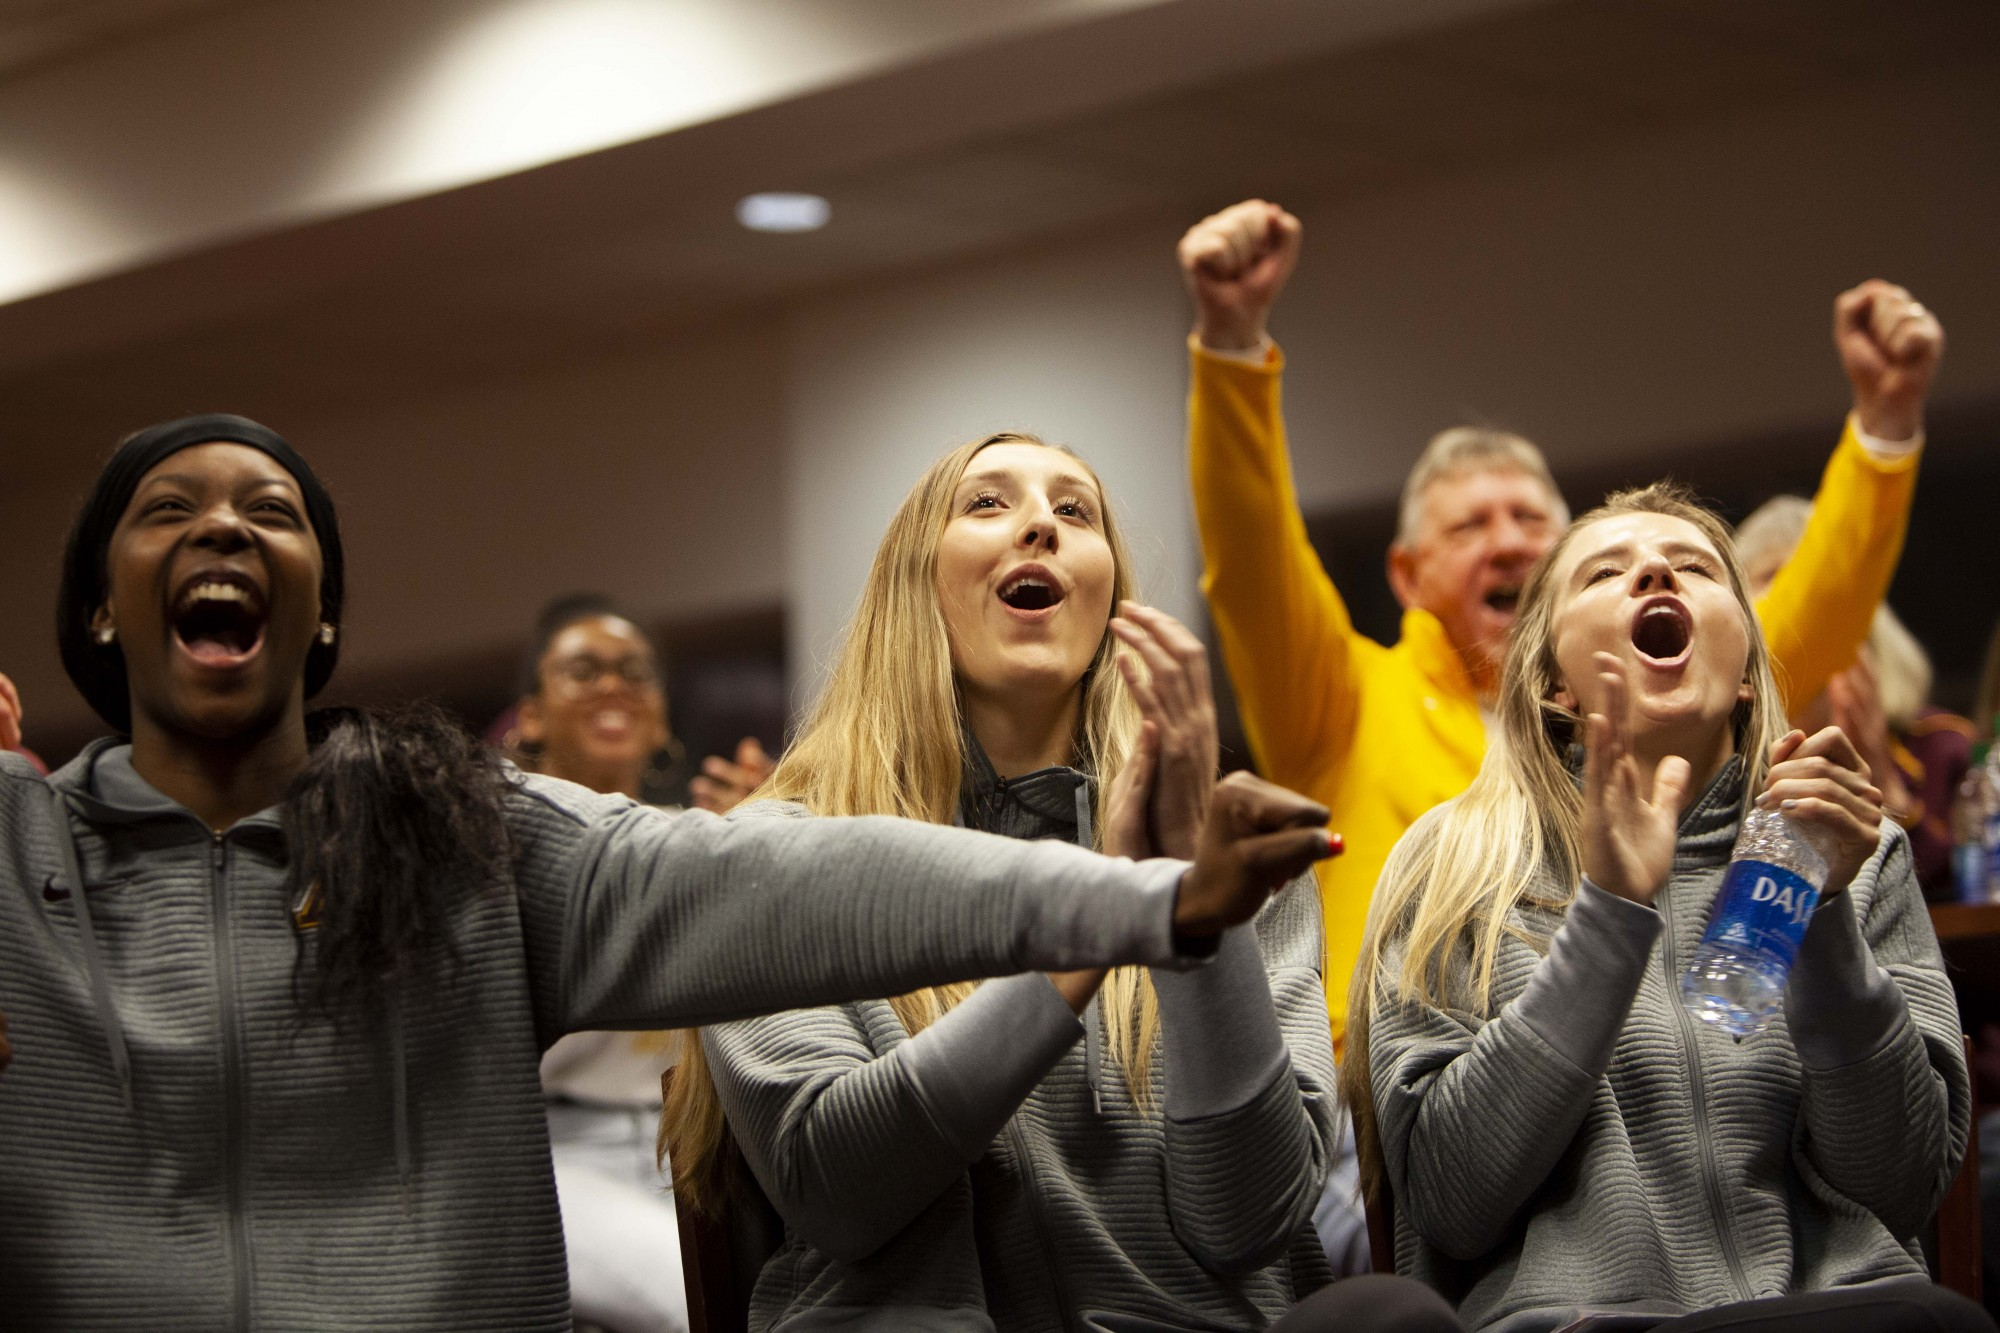 From left, Gophers Adanna Rollins, Shea Rubright and CC McGraw cheer upon hearing their ranking at the NCAA Championship seed announcements at Williams Arena on Sunday, Dec. 1.  Minnesota, ranked seventh, is slated to play Fairfield University in the first round.